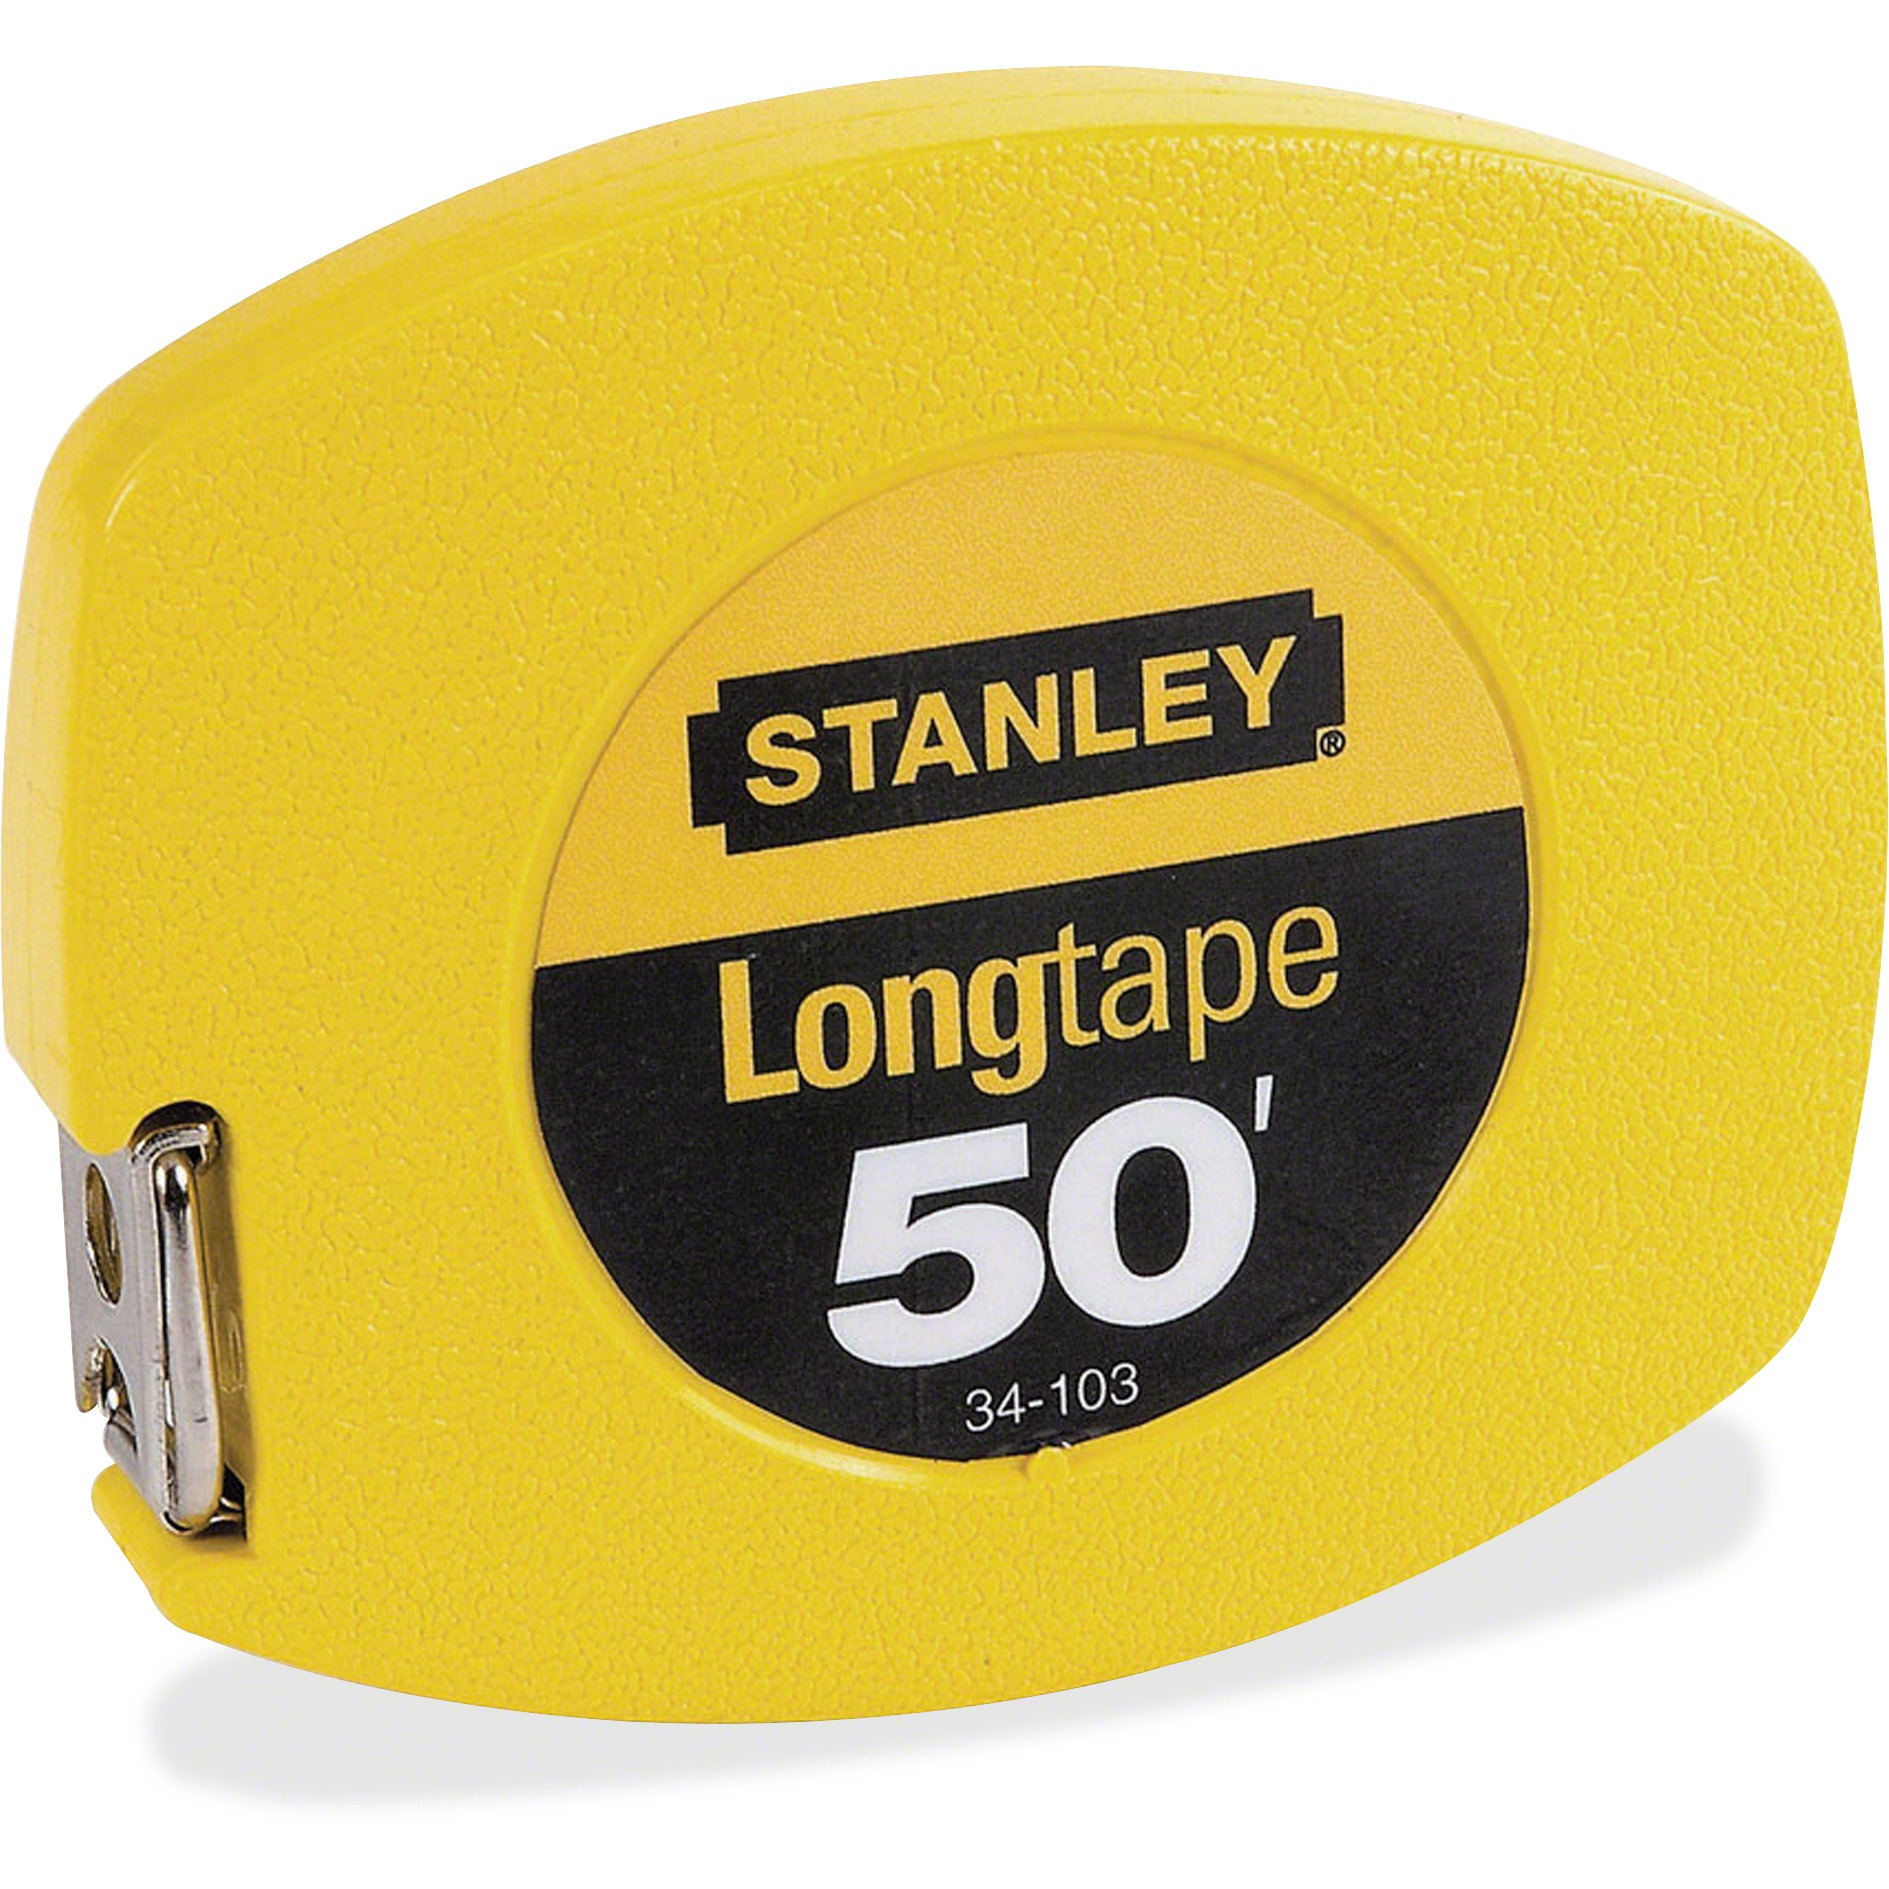 "Stanley Hand Tools 34-103 3/8"" X 50' High-Visibility Tape Measure Reels"